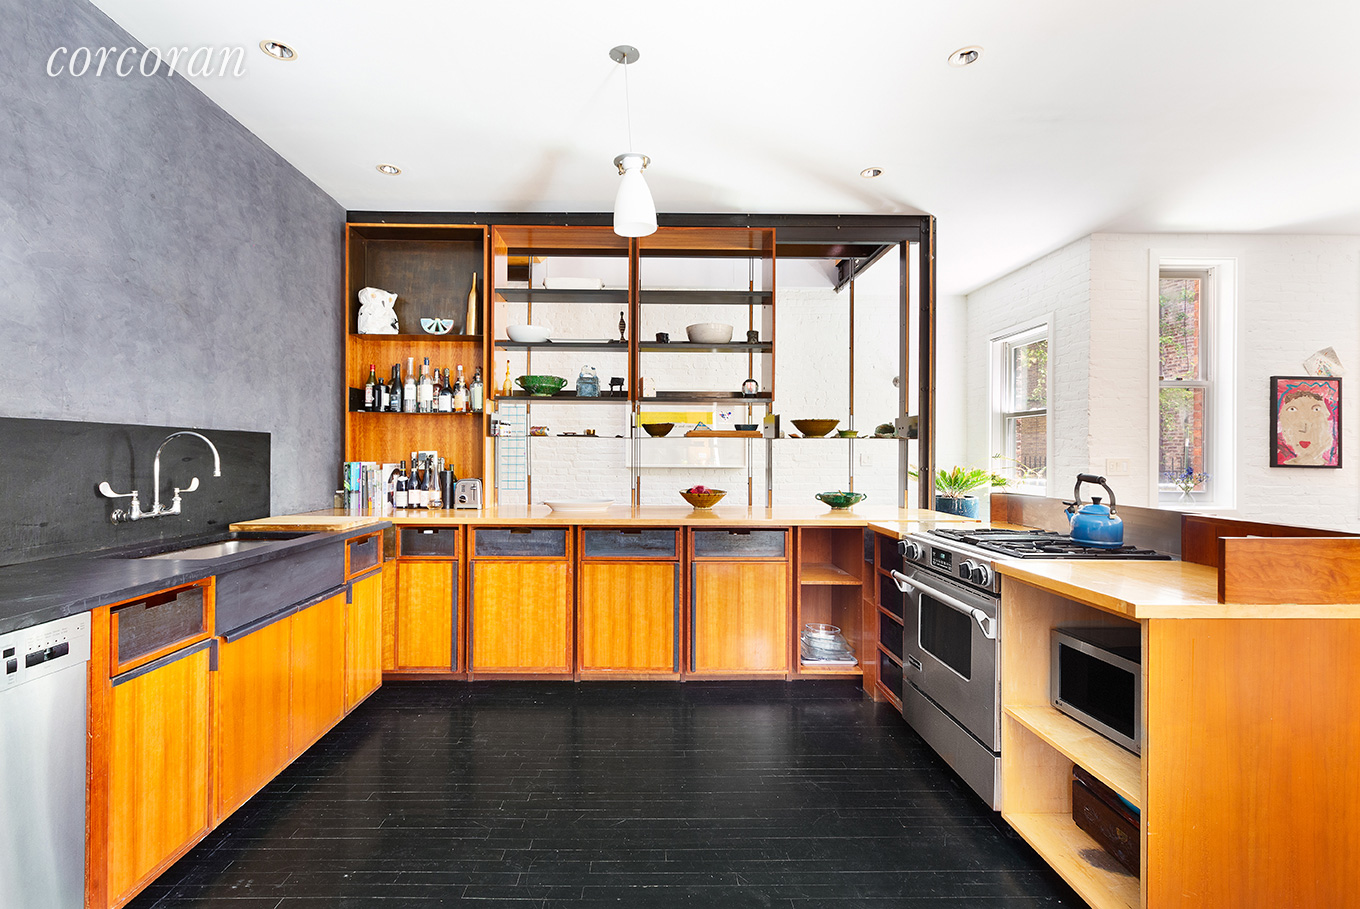 The Brooklyn carriage house has midcentury style teak cabinetry in the kitchen with modern stainless steel appliances.